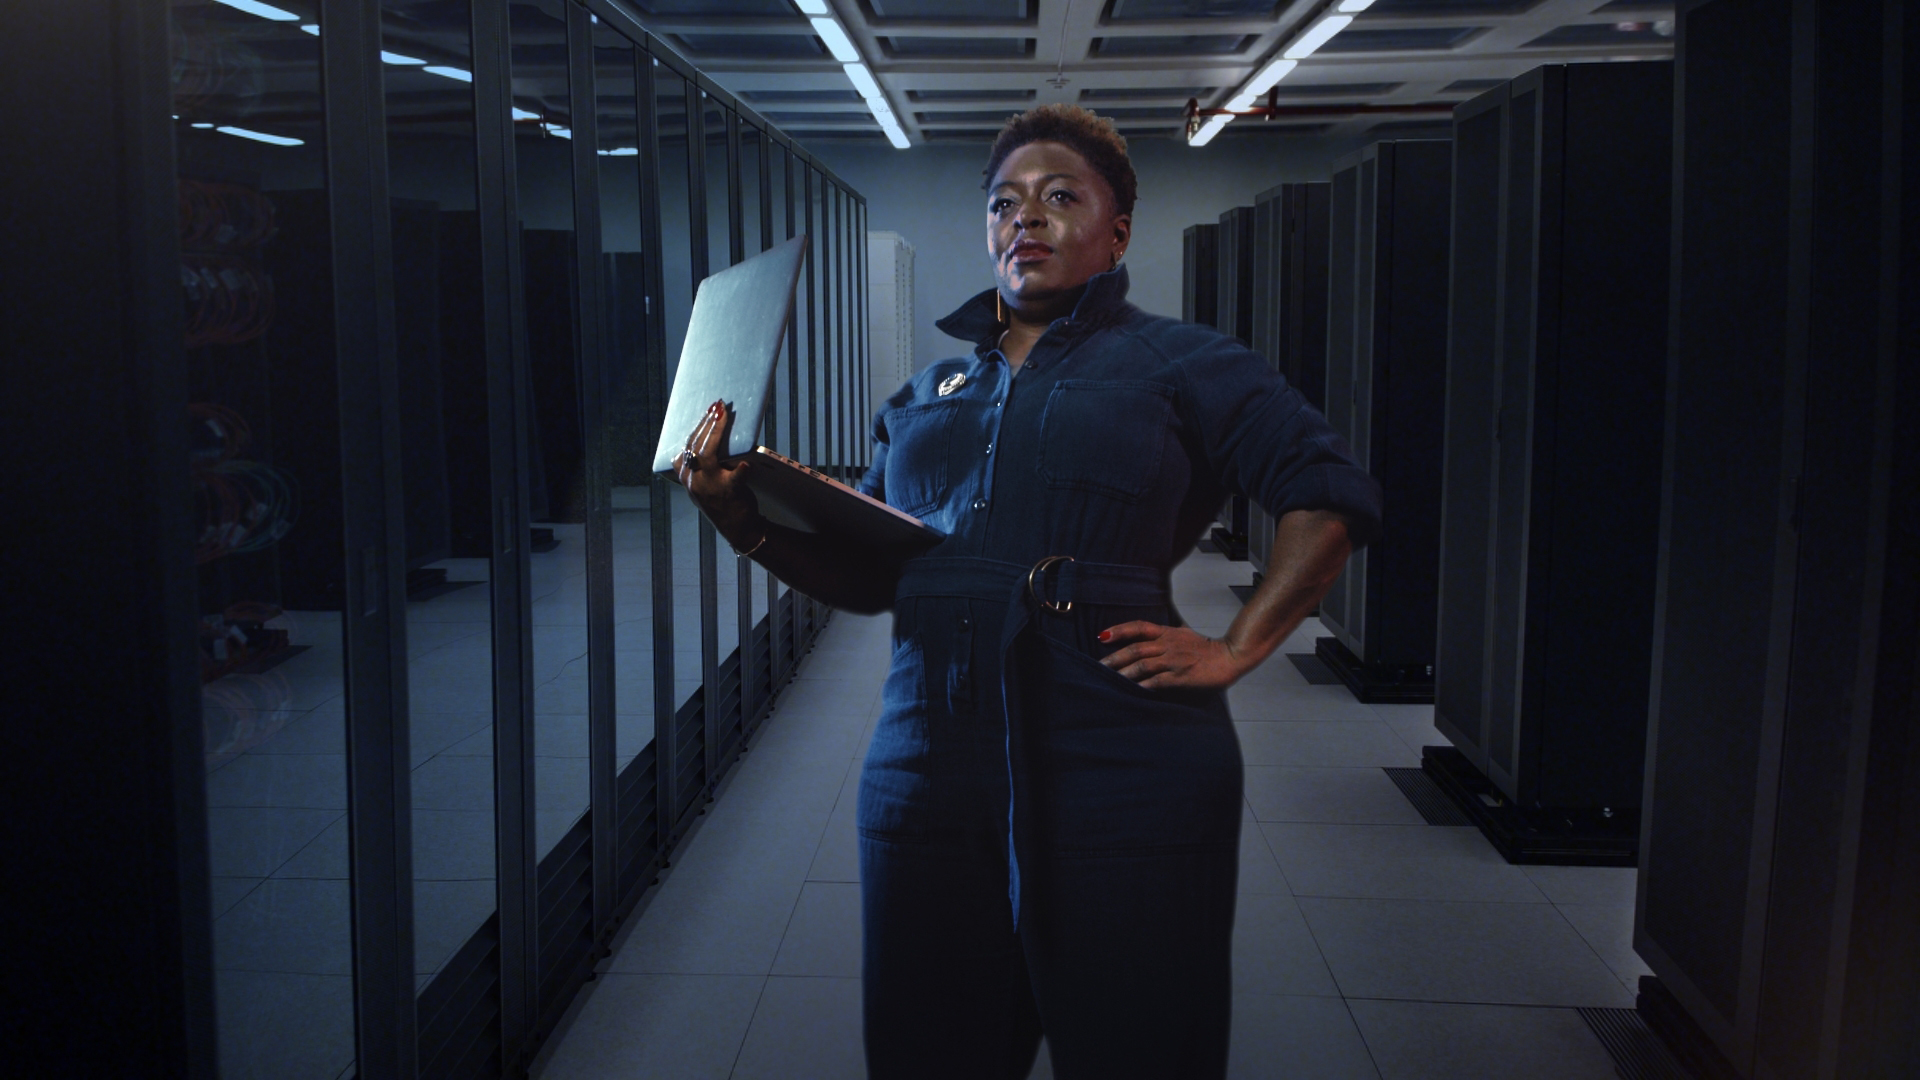 Nationally recognized electrical engineer and founder and CEO of Black Girls Code, Kimberly Bryant, is shown helping the next generation while wearing her Rosie Reborn jumpsuit. Photo Credit: Cotton Incorporated